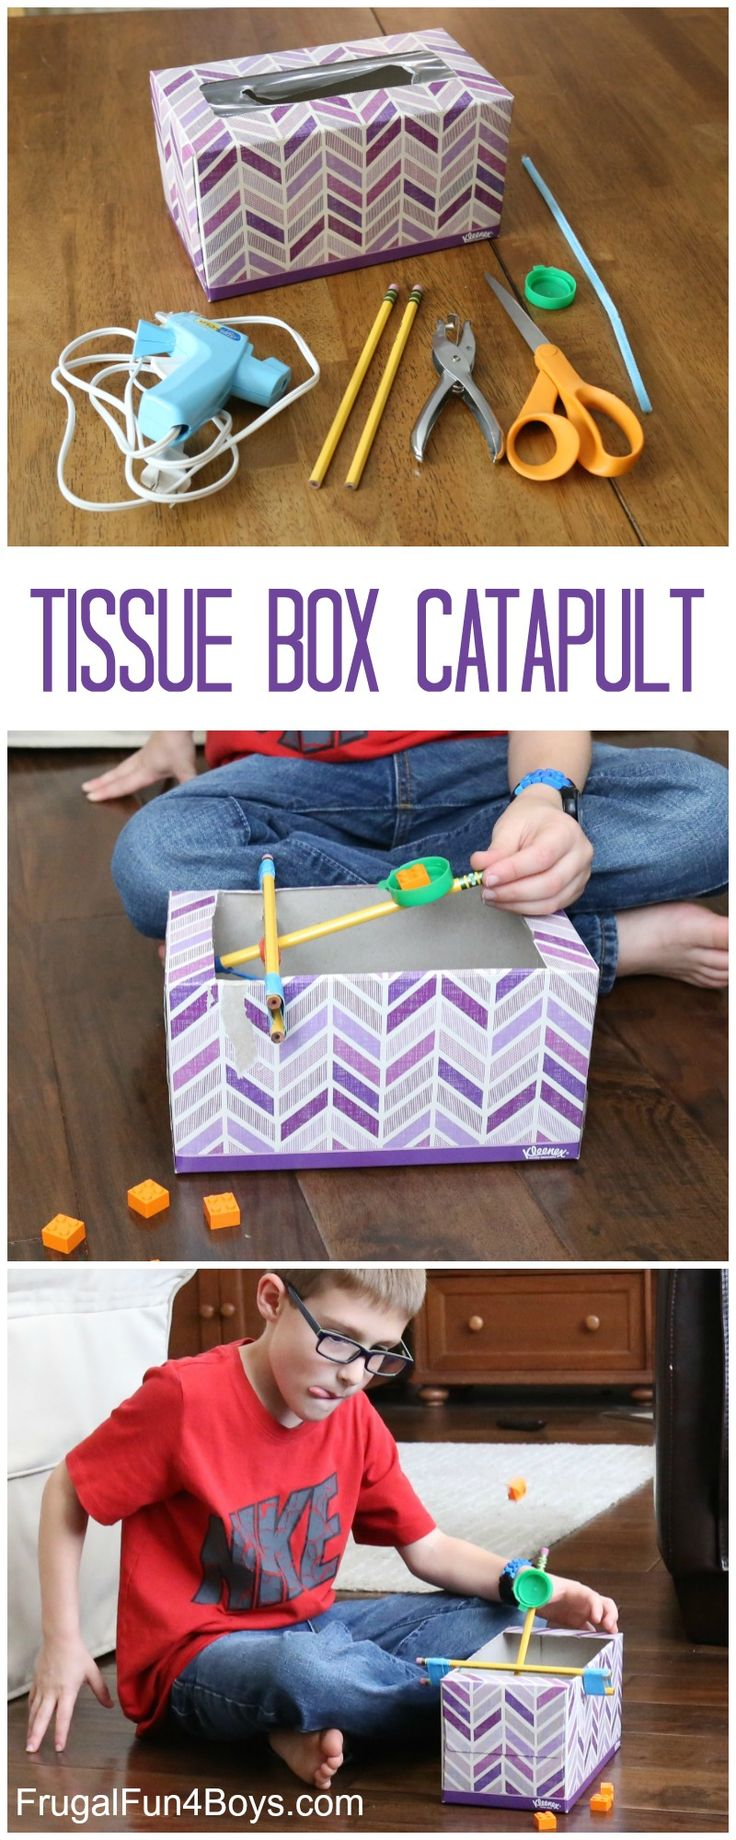 How to Build a Tissue Box Catapult - Fun STEM project! Make it an experiment by modifying the design or by testing different materials to see how far they shoot.